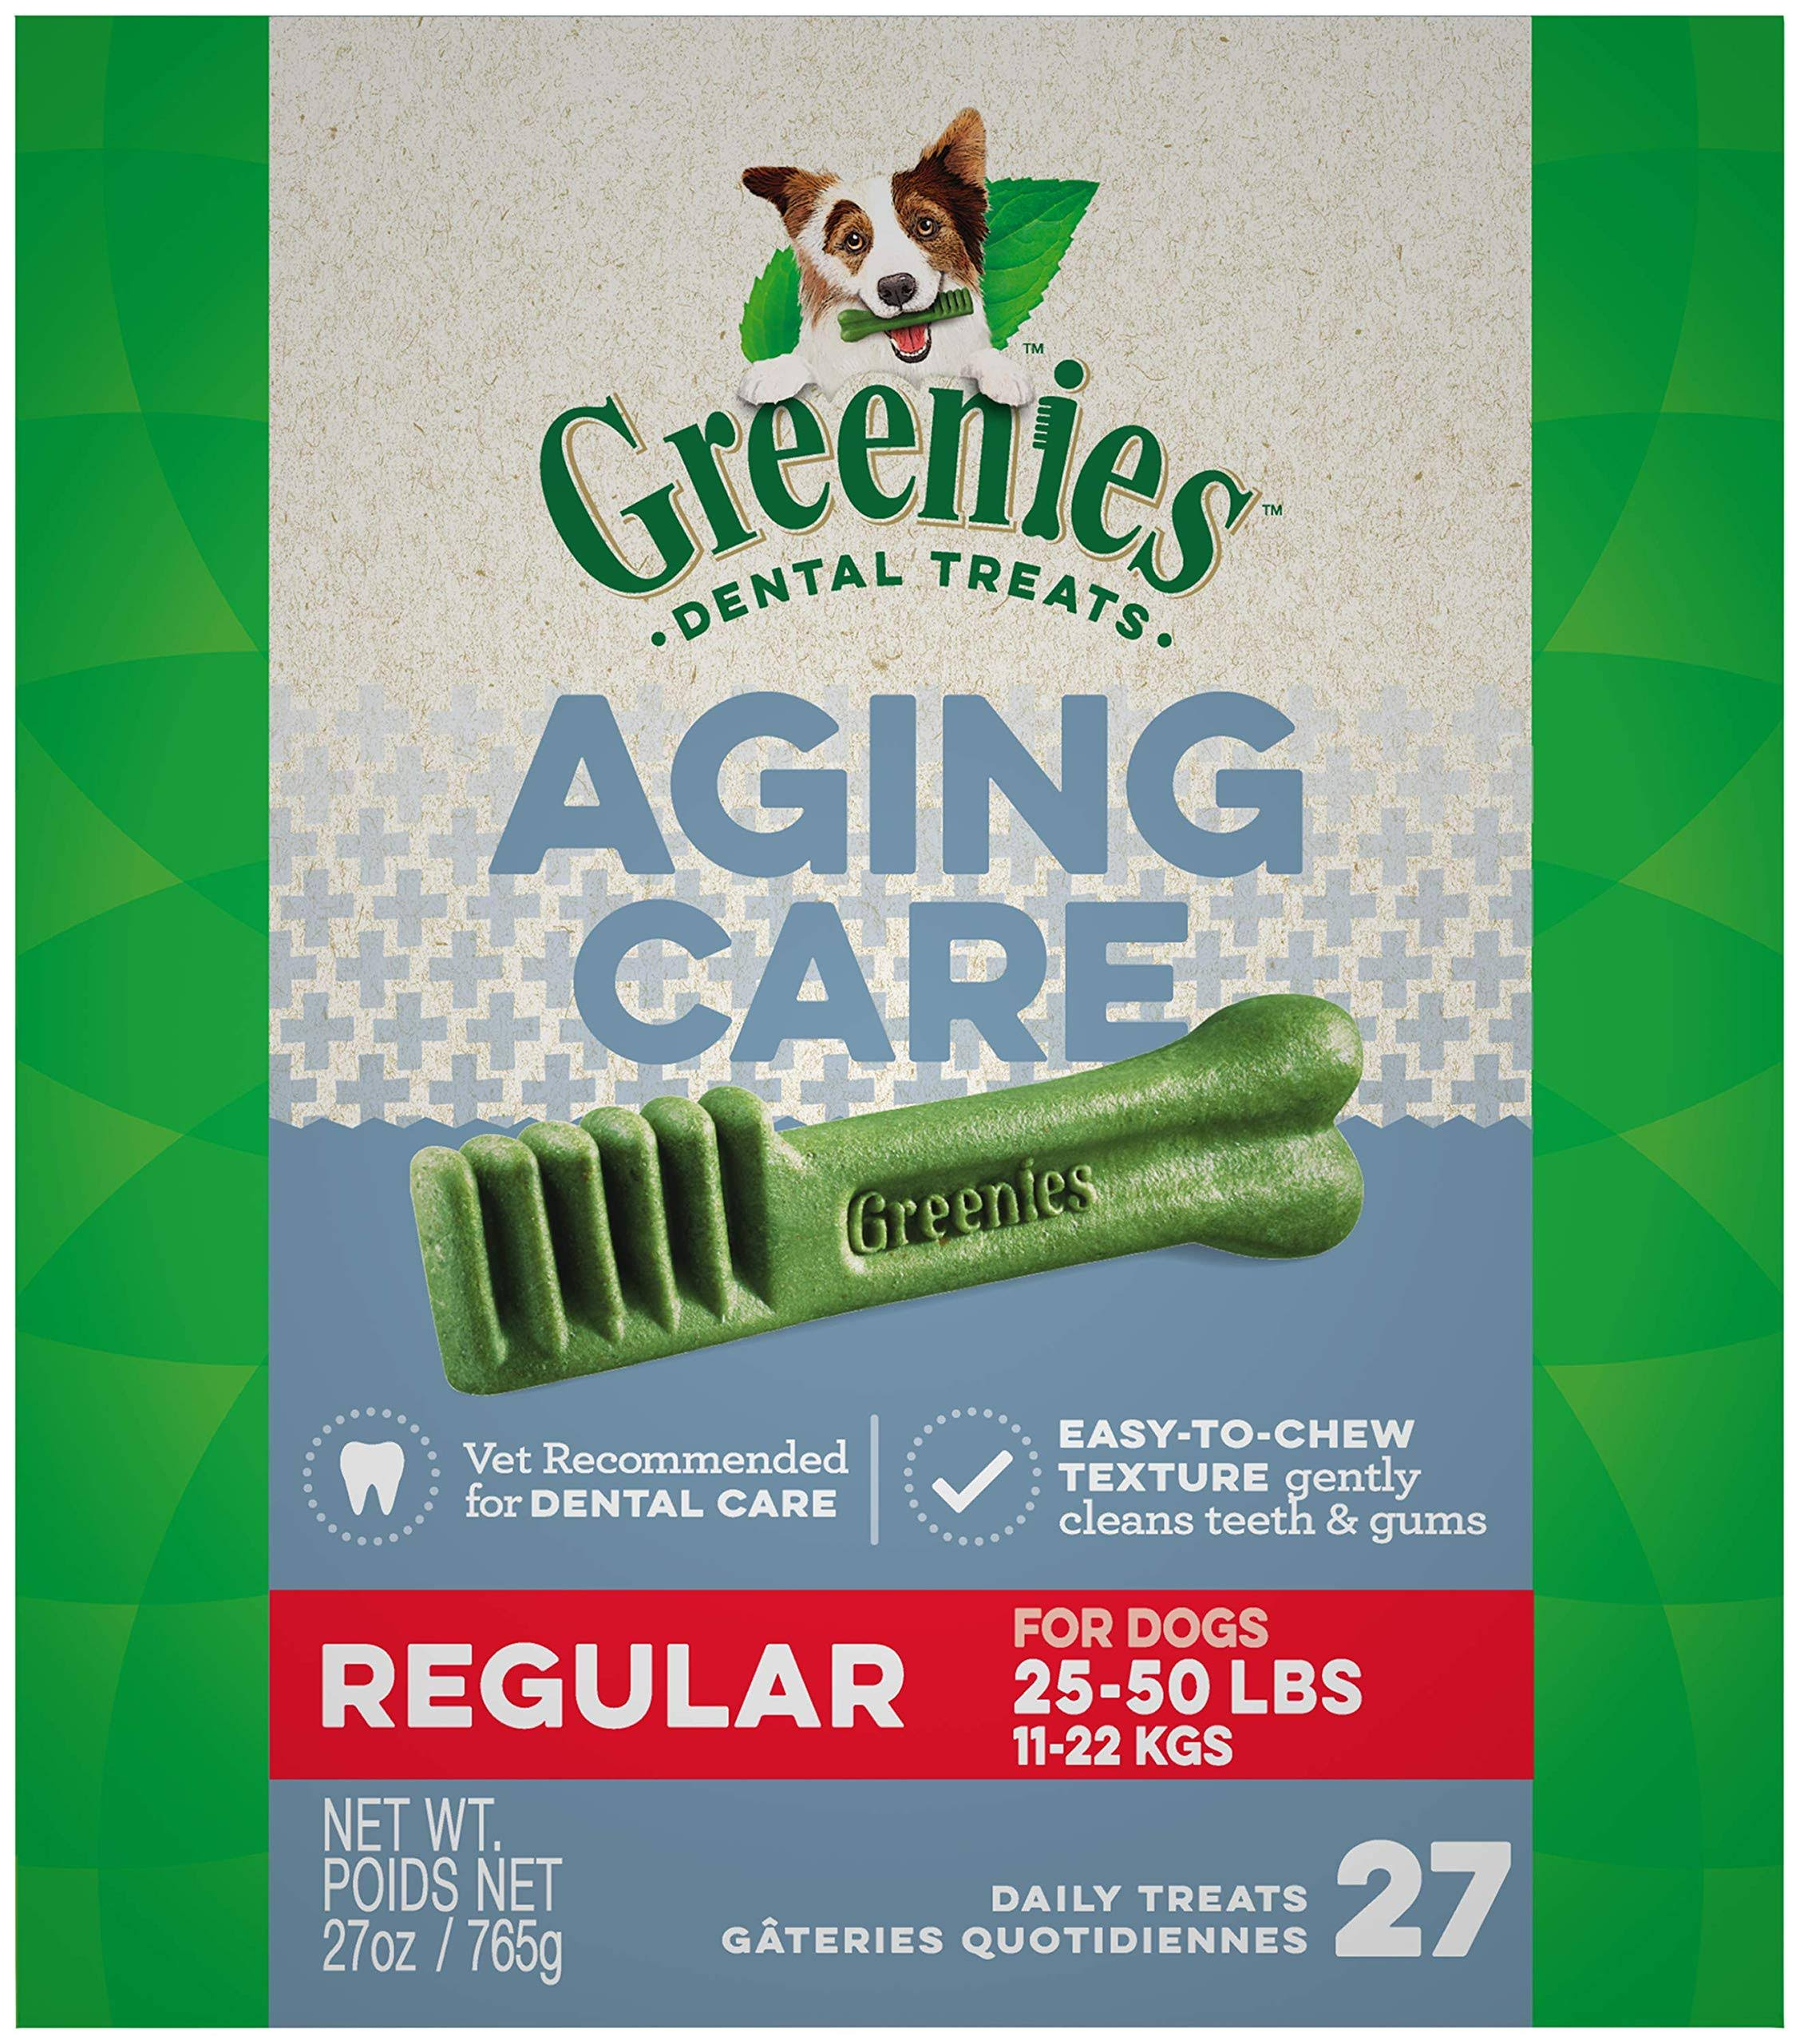 Greenies Aging Care Regular Size Dental Dog Treats - 27oz